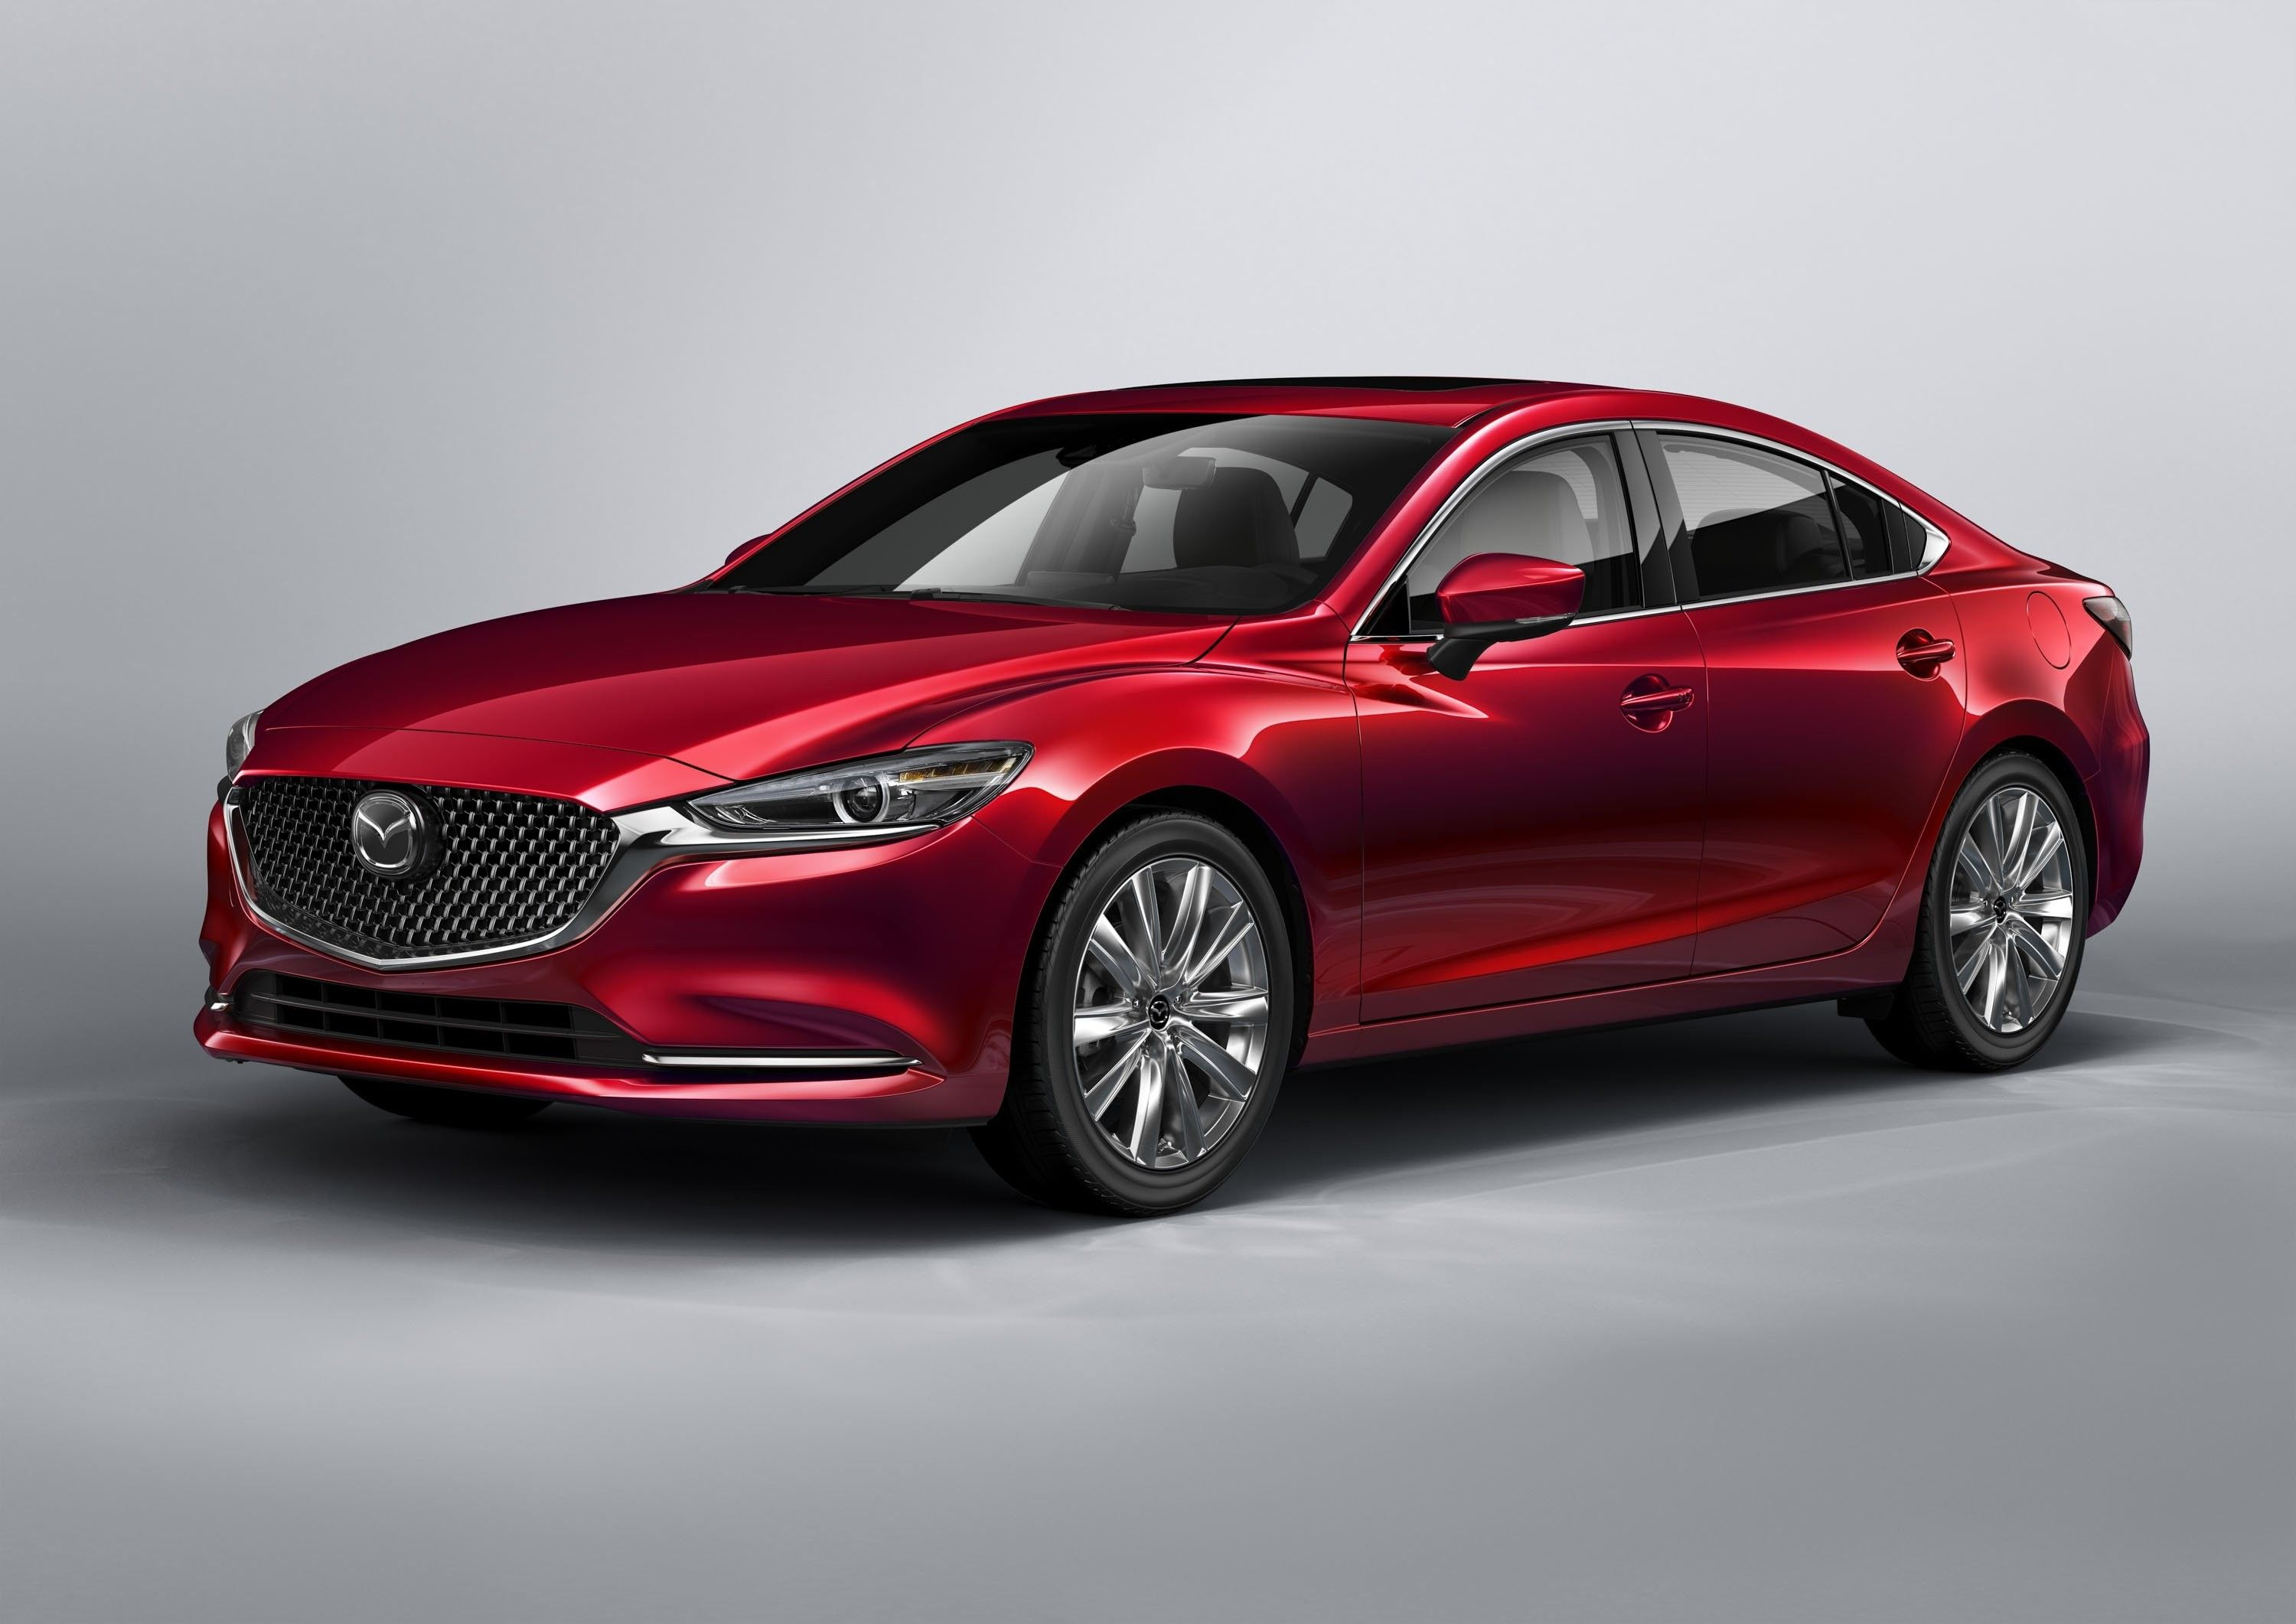 2018 Mazda 6 Concept Redesign And Review Car Gallery Mazda